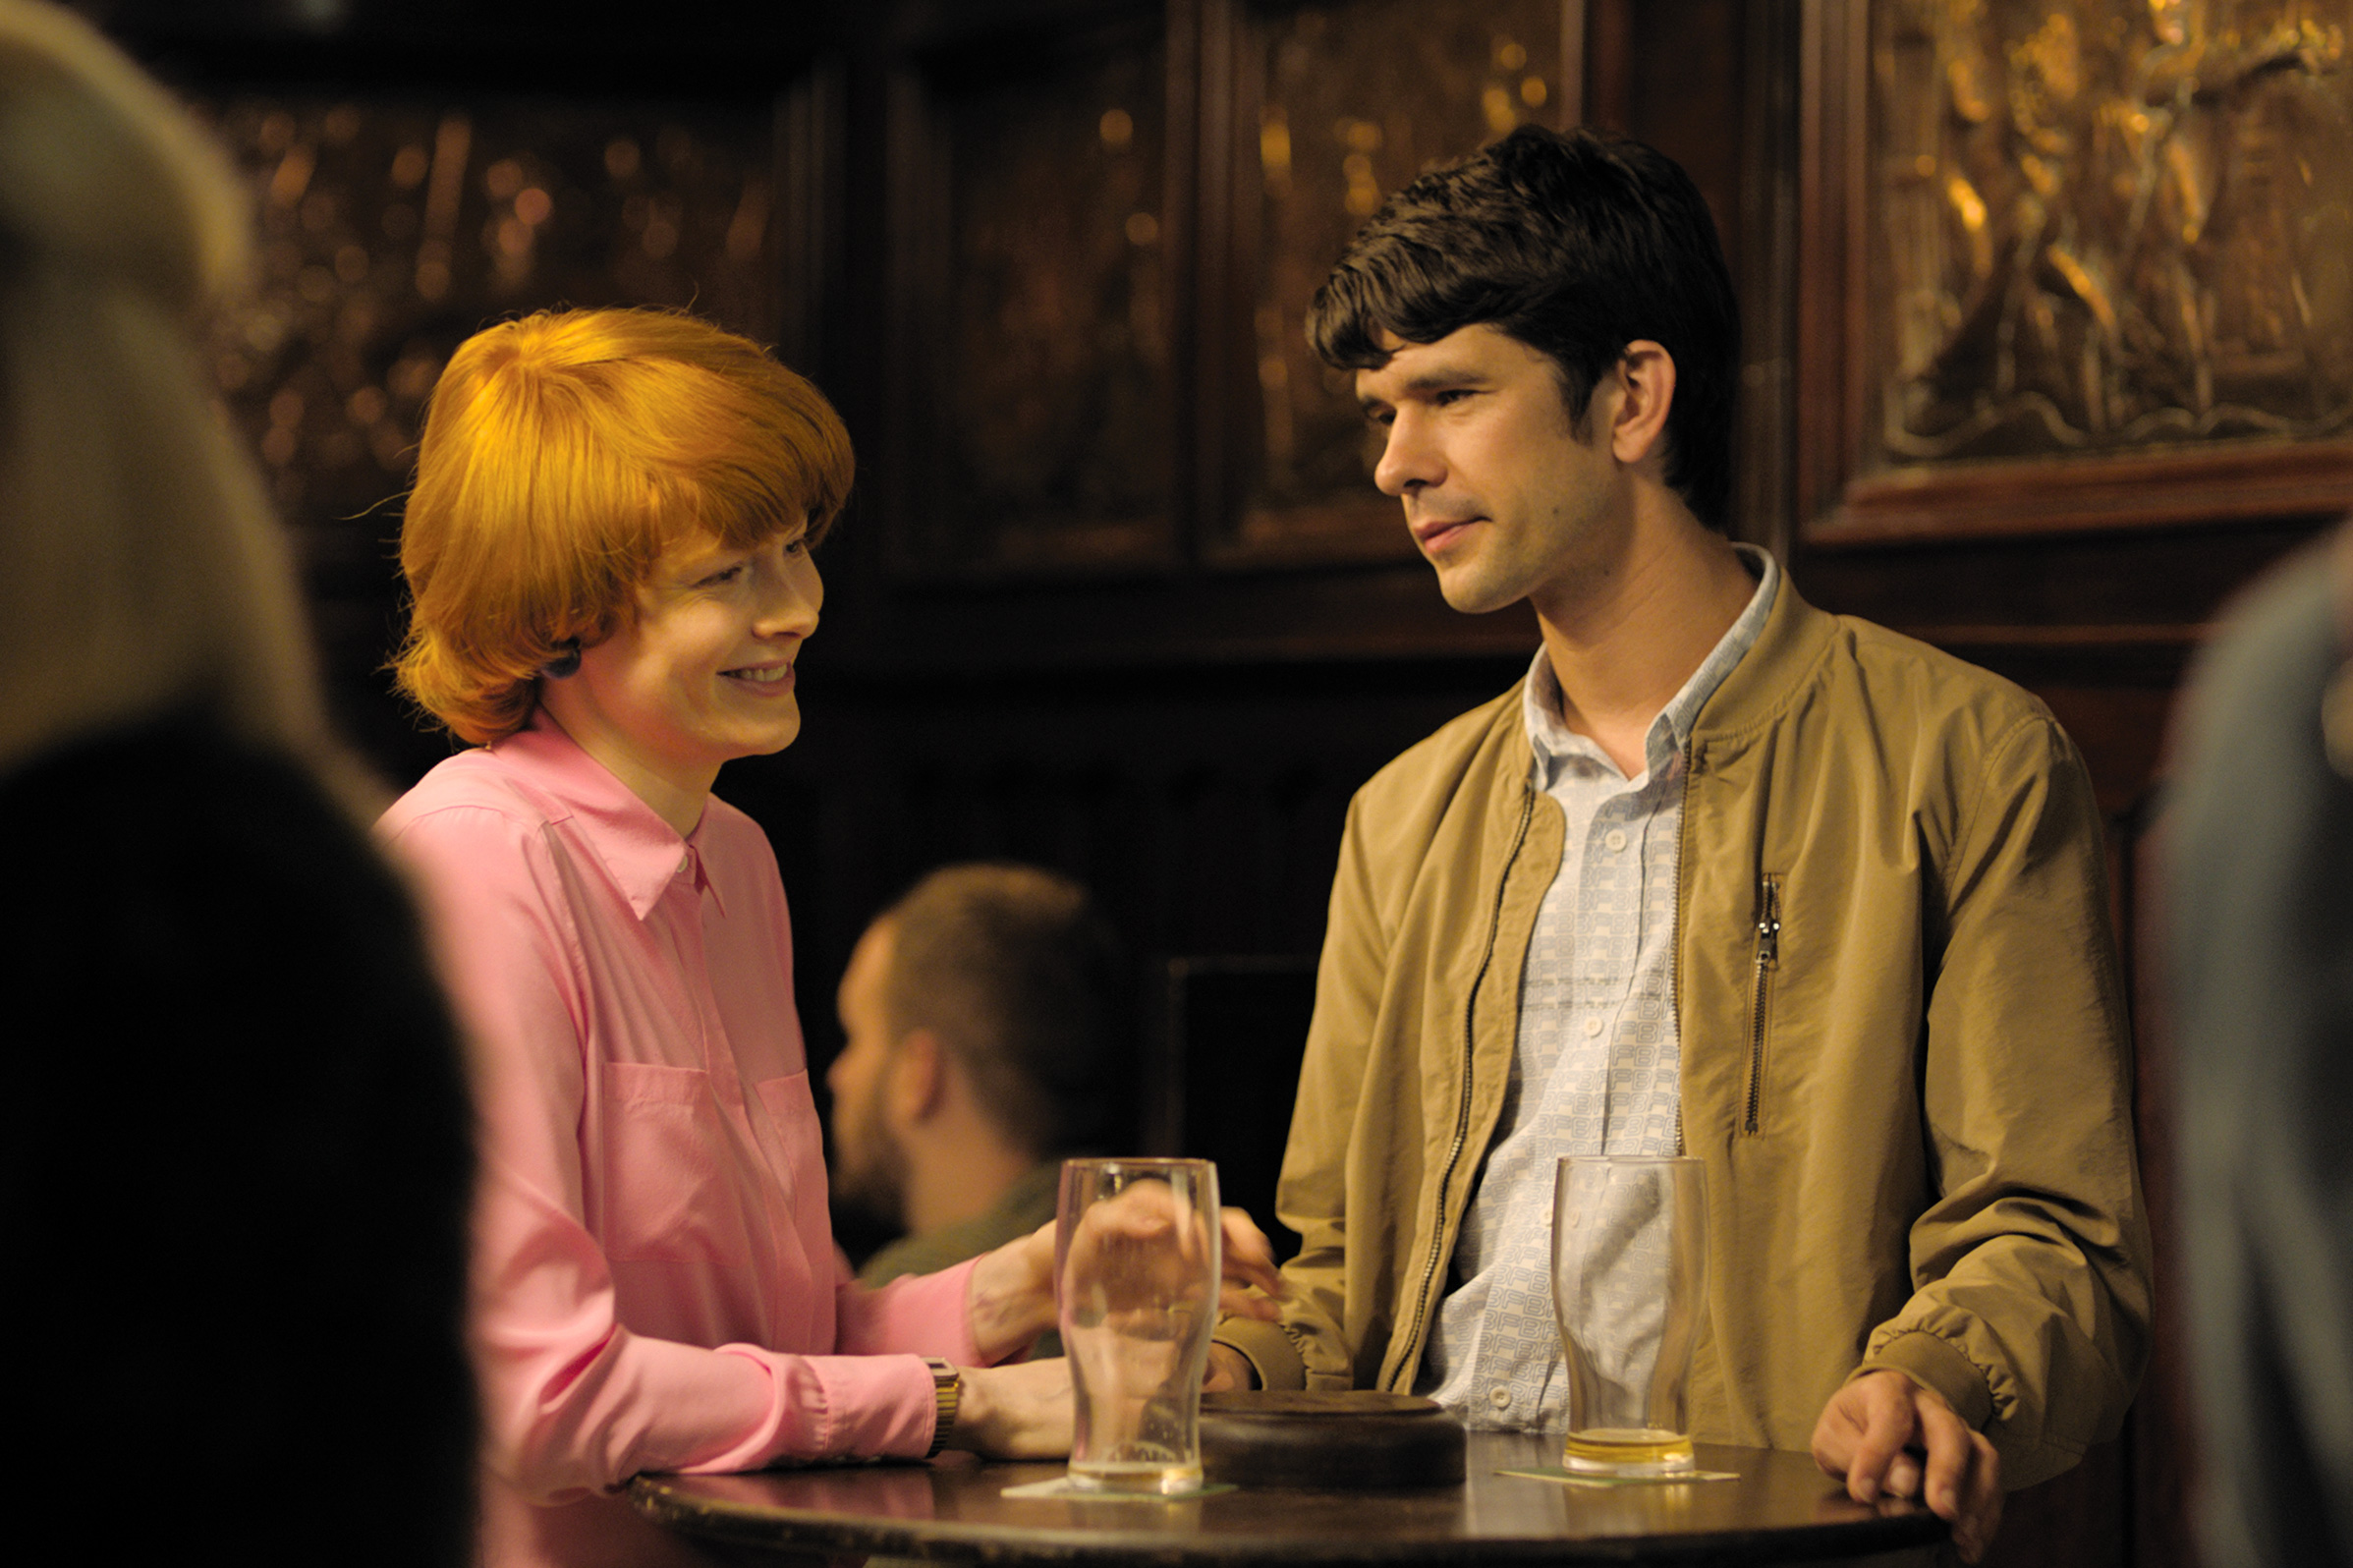 Emily Beecham and Ben Whishaw in LITTLE JOE, a Magnolia Pictures release. © coop99, The Bureau, Essential Films. Photo courtesy of Magnolia Pictures.